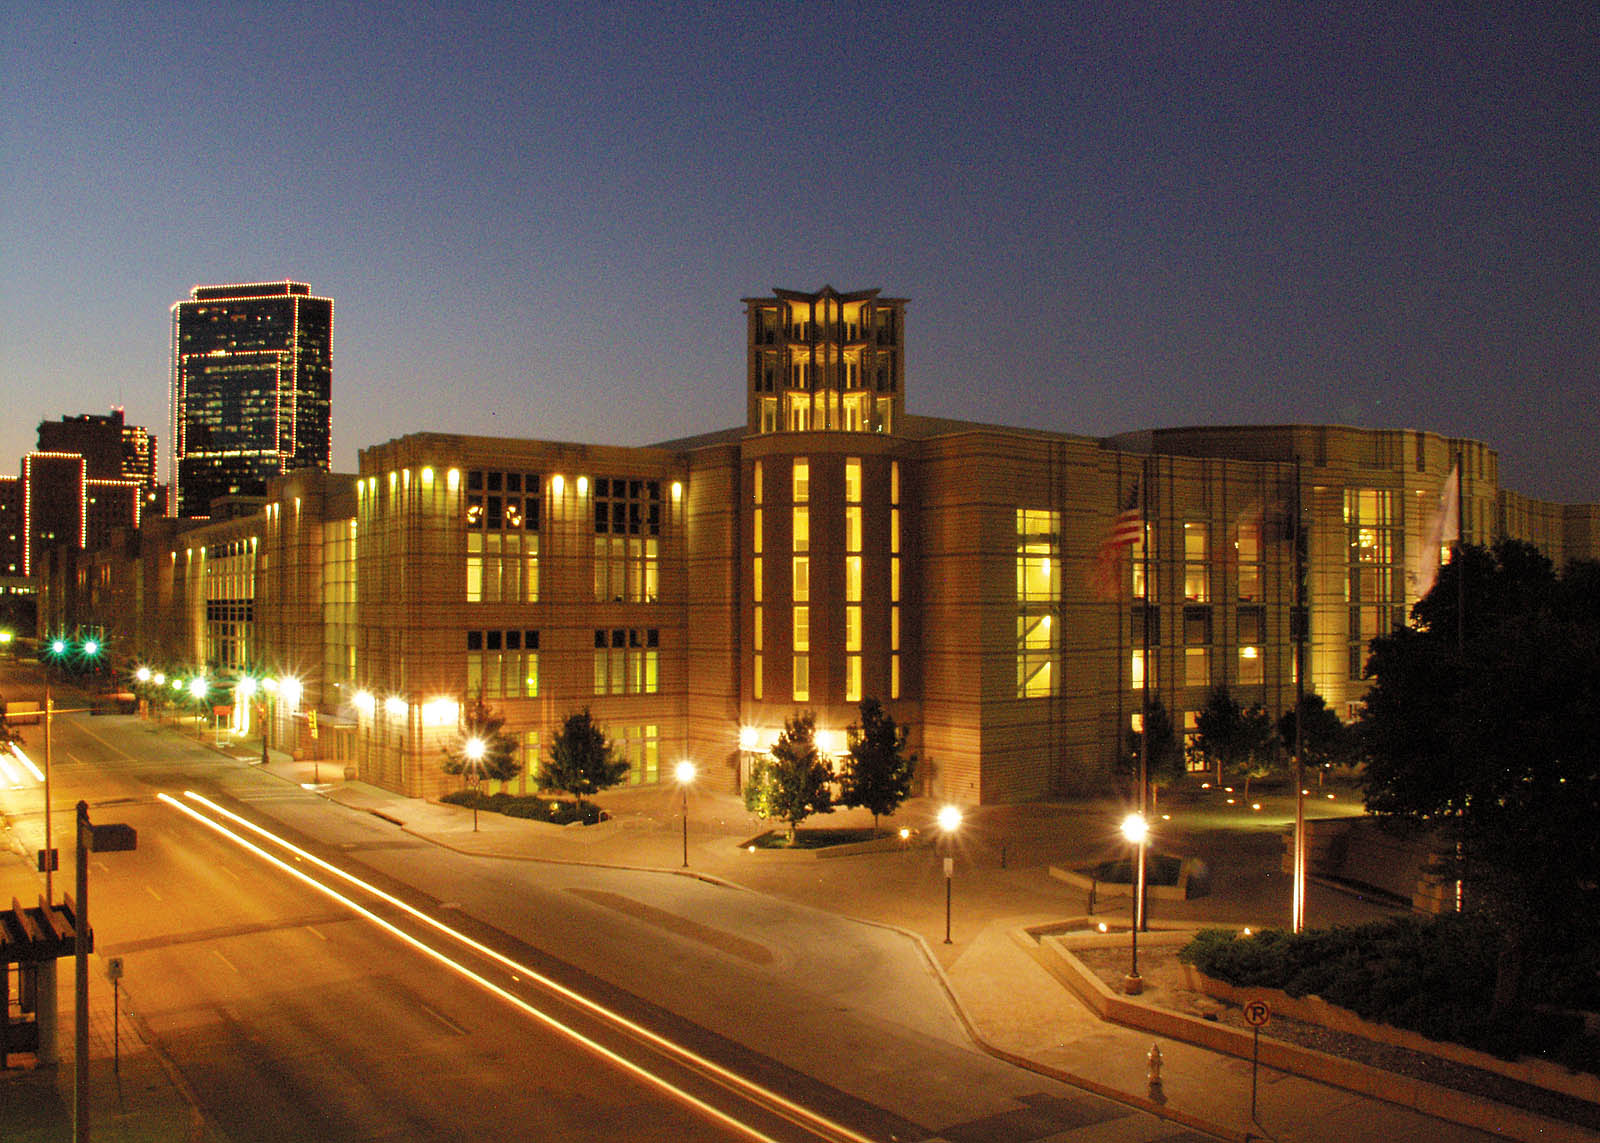 Fort Worth Convention Center at dusk.